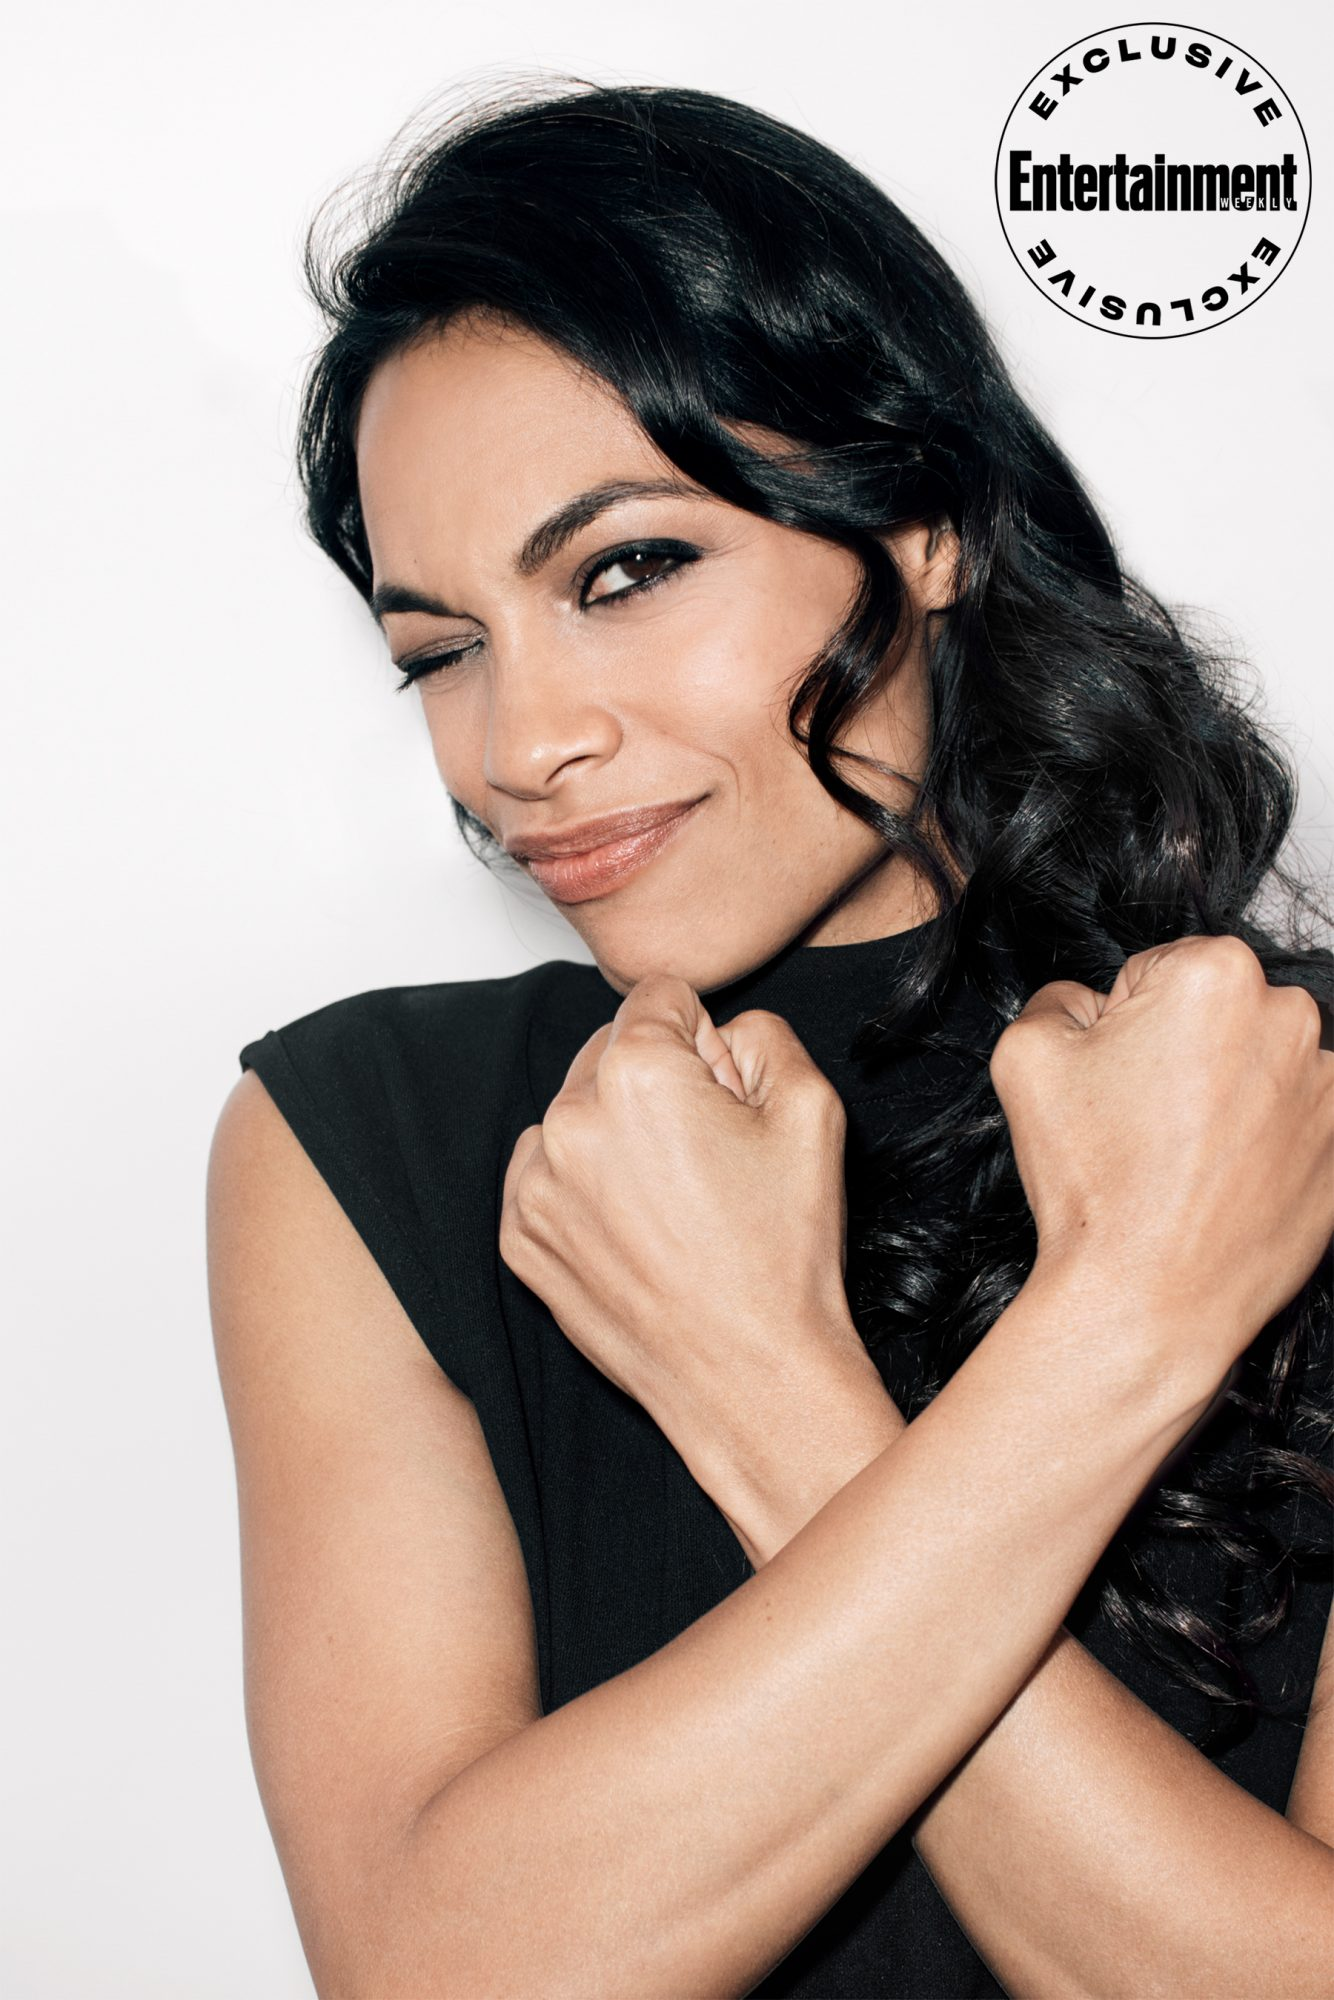 Rosario Dawson from Wonder Woman: Bloodlines photographed at New York Comic Con 2019 by Ben Ritter for Entertainment Weekly. Credit: Ben Ritter for EW